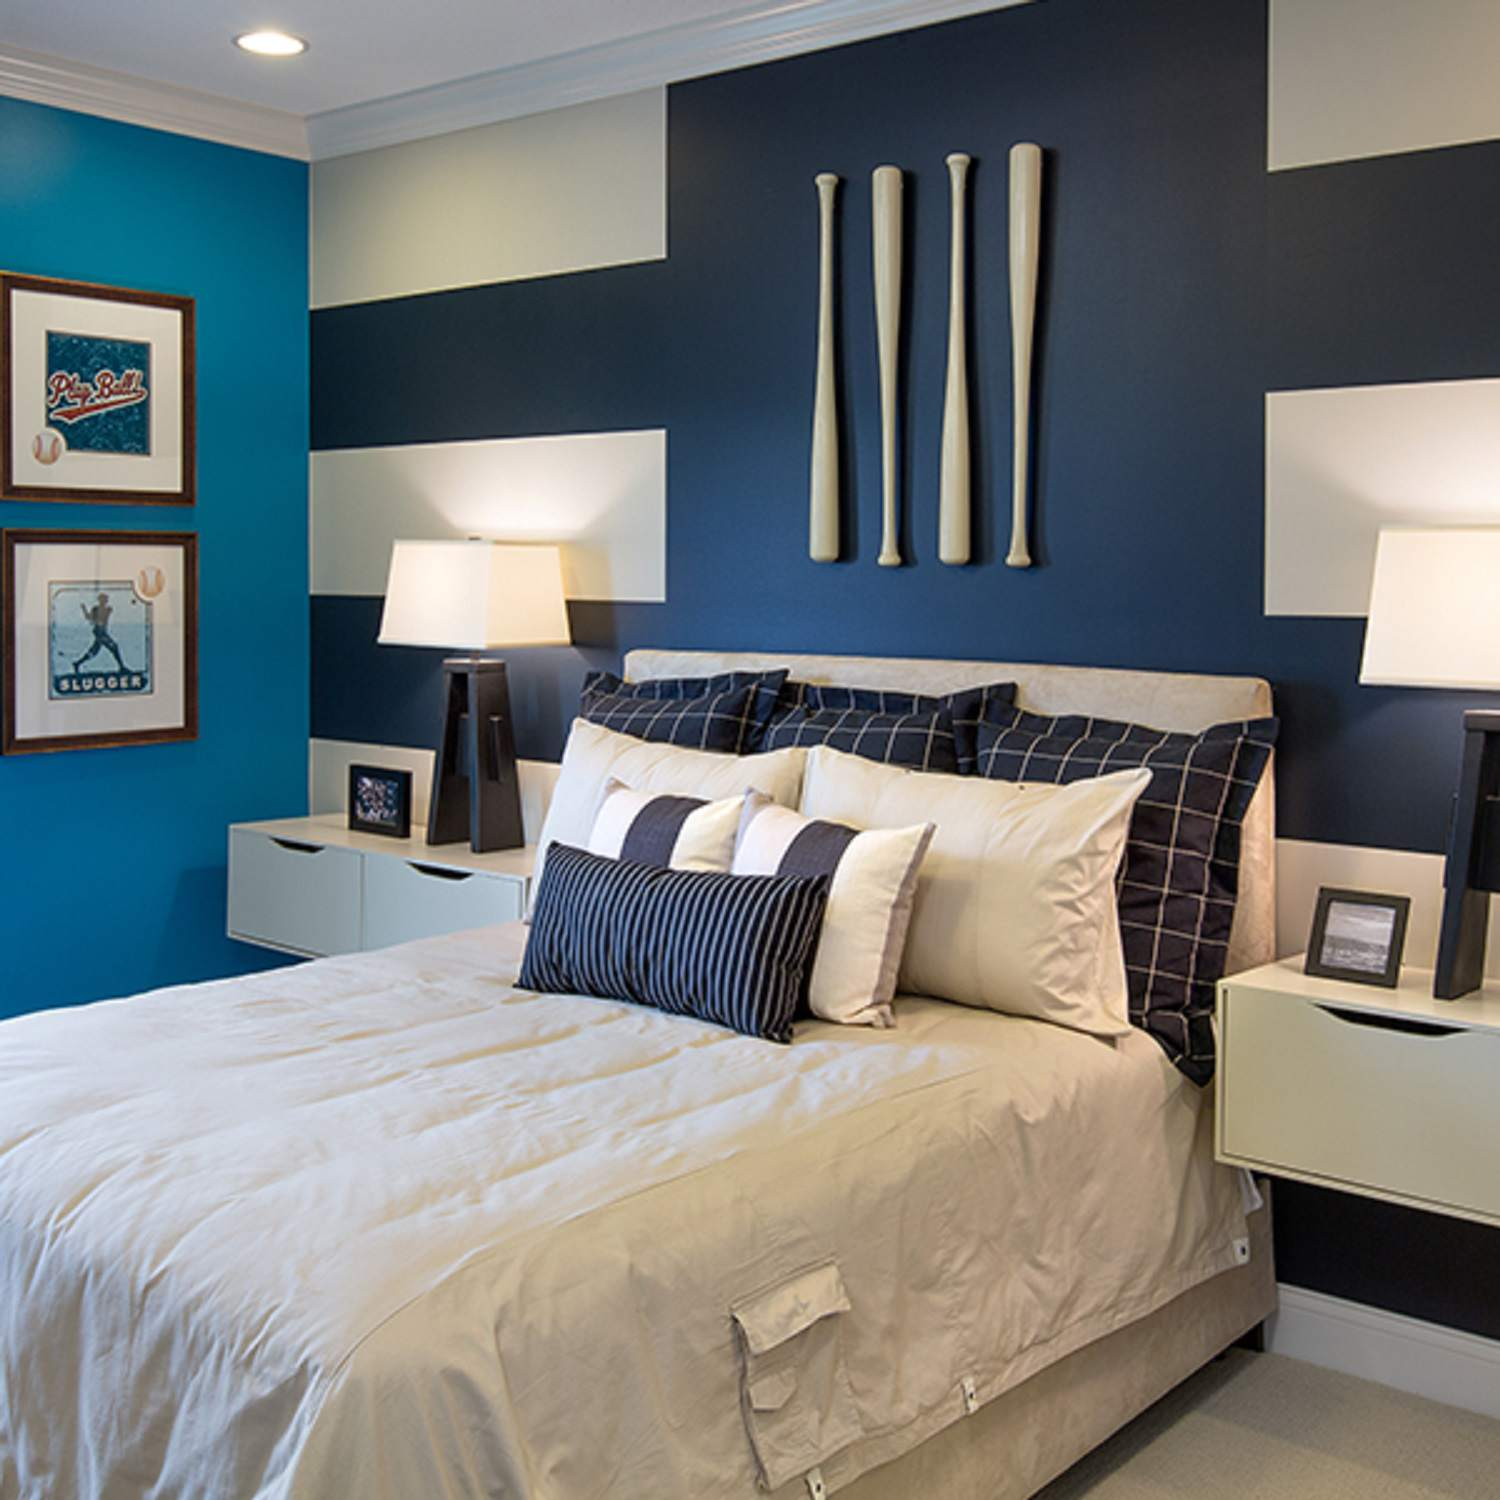 24 Ways To Decorate Bedroom Walls With Stripes